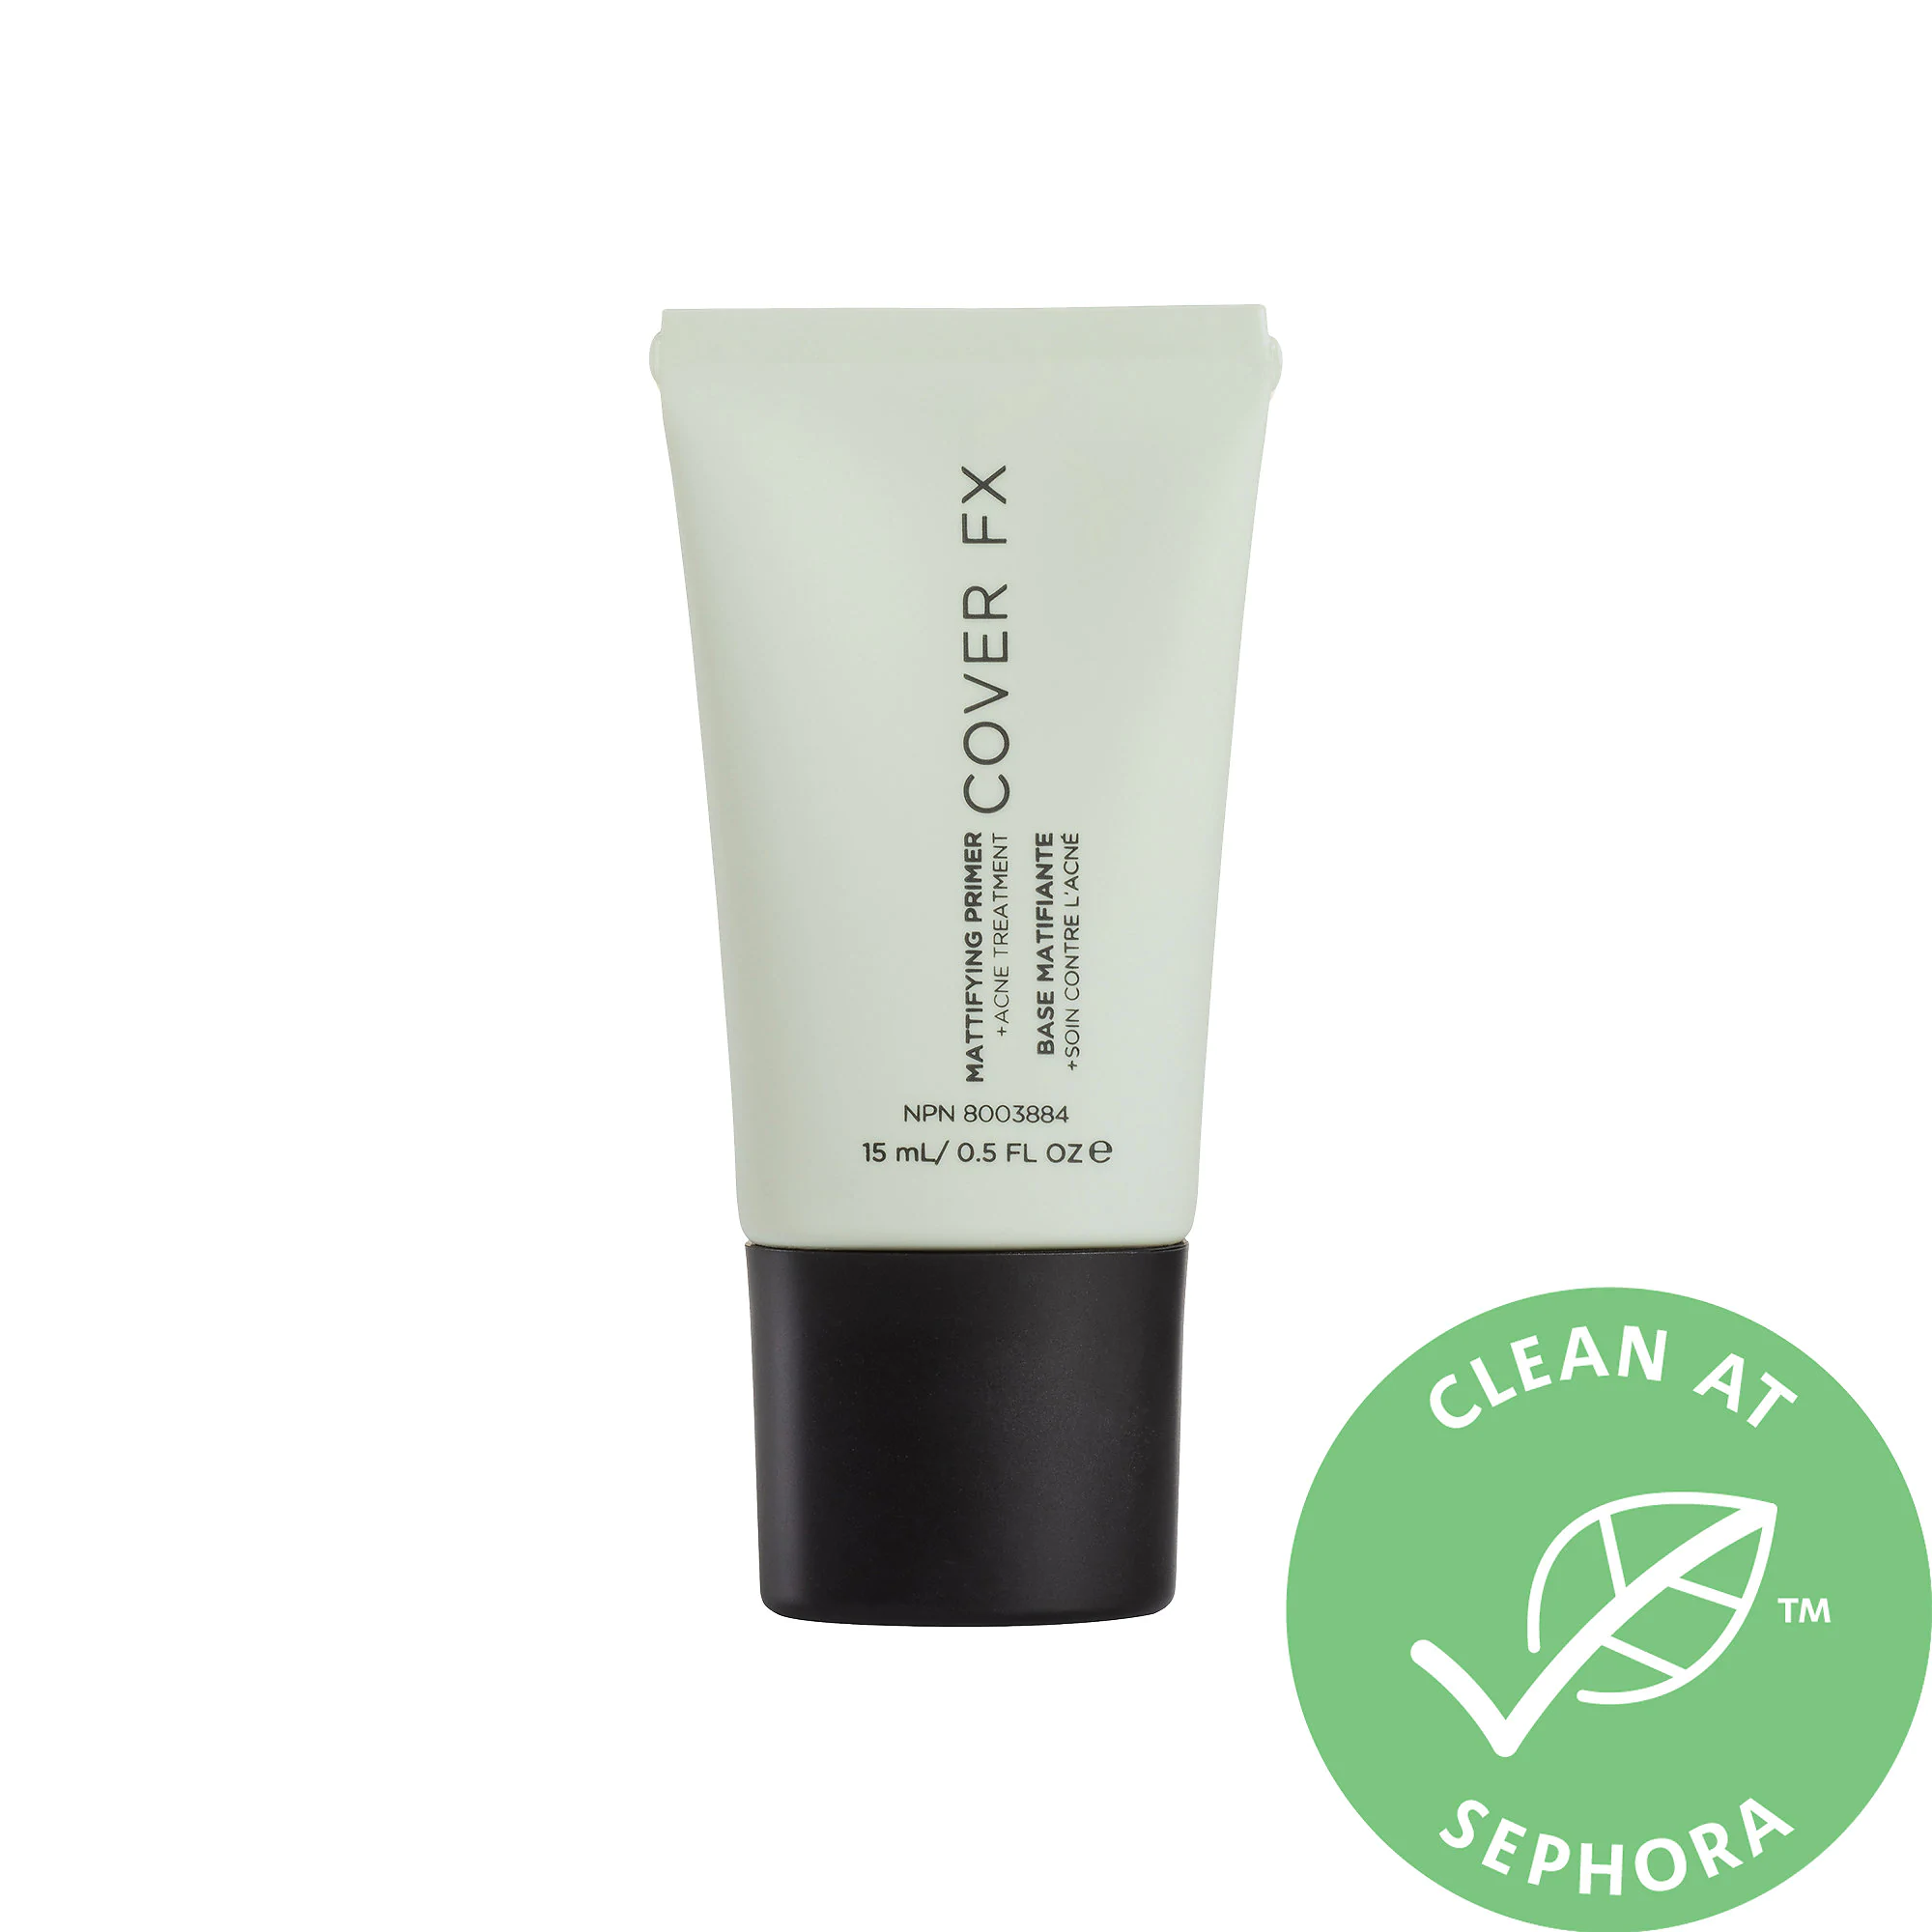 COVER FX-Mattifying Primer With Anti-Acne Treatment